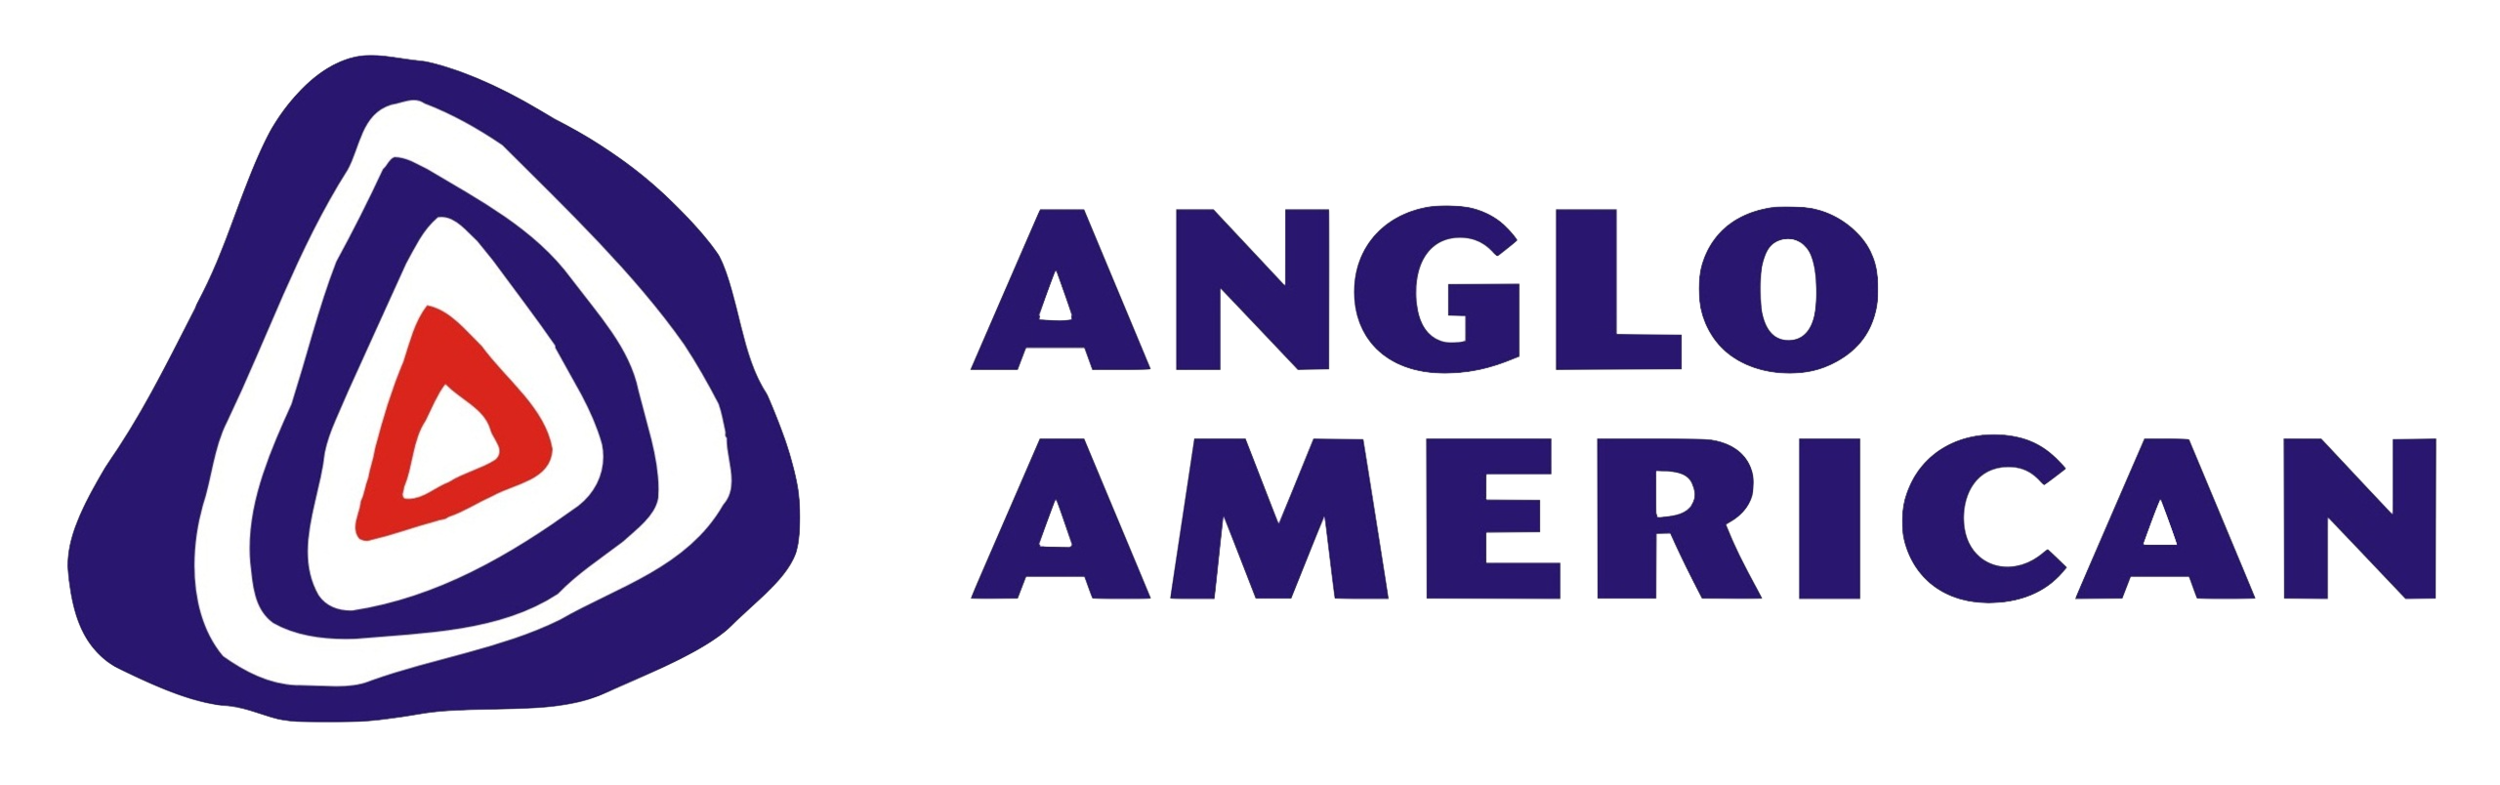 Anglo American .png